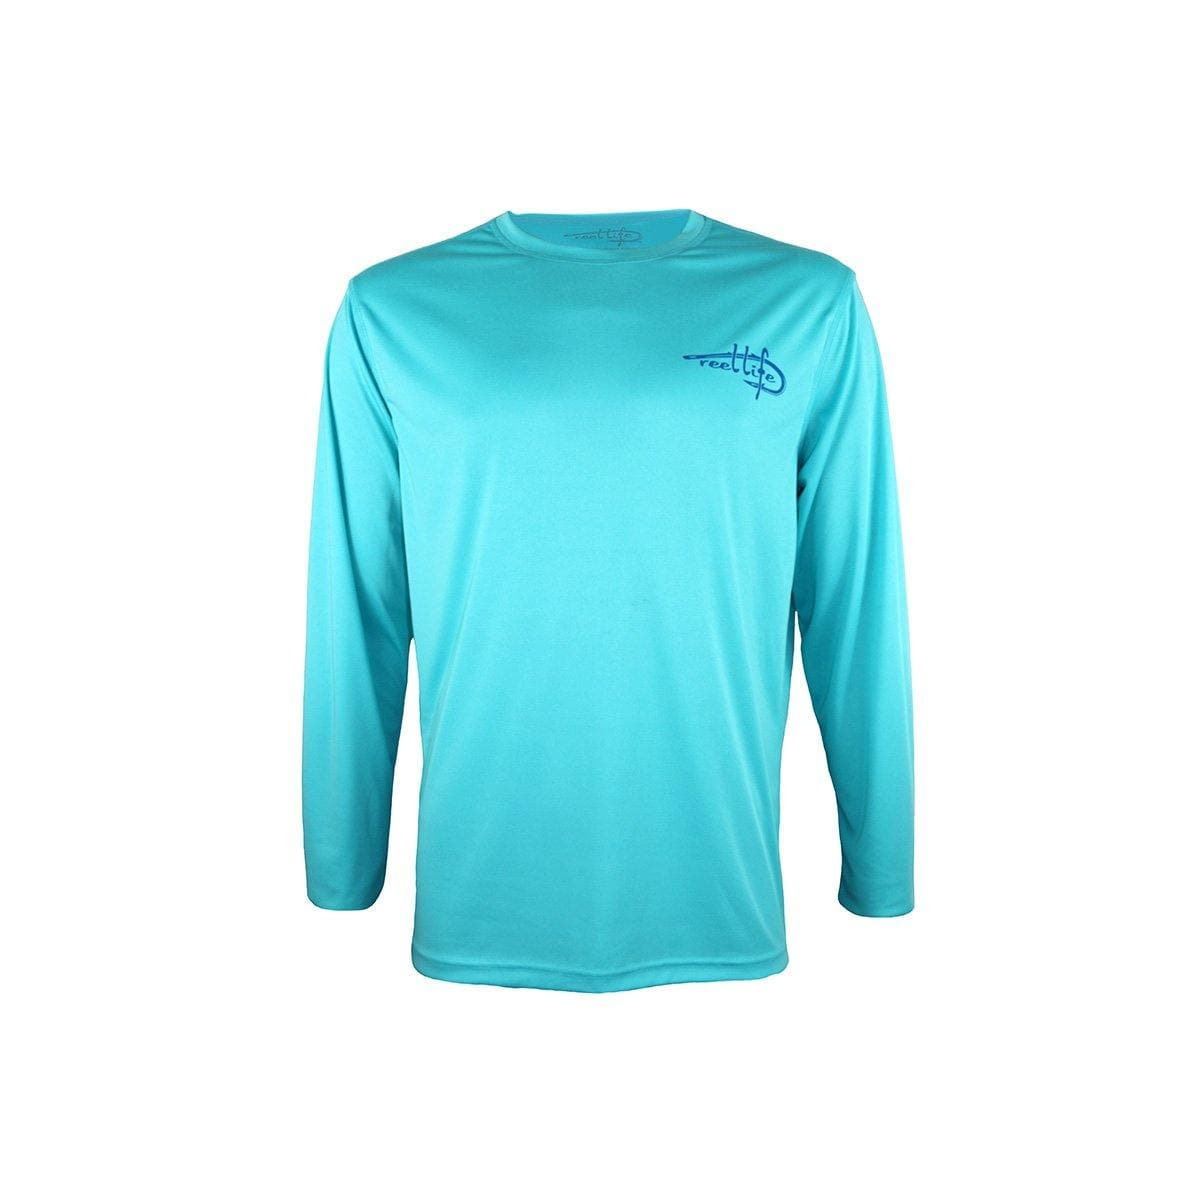 "Reel Life Men's Long Sleeve UV ""Raised on the Water"" - Scuba Blue - Reel Life"